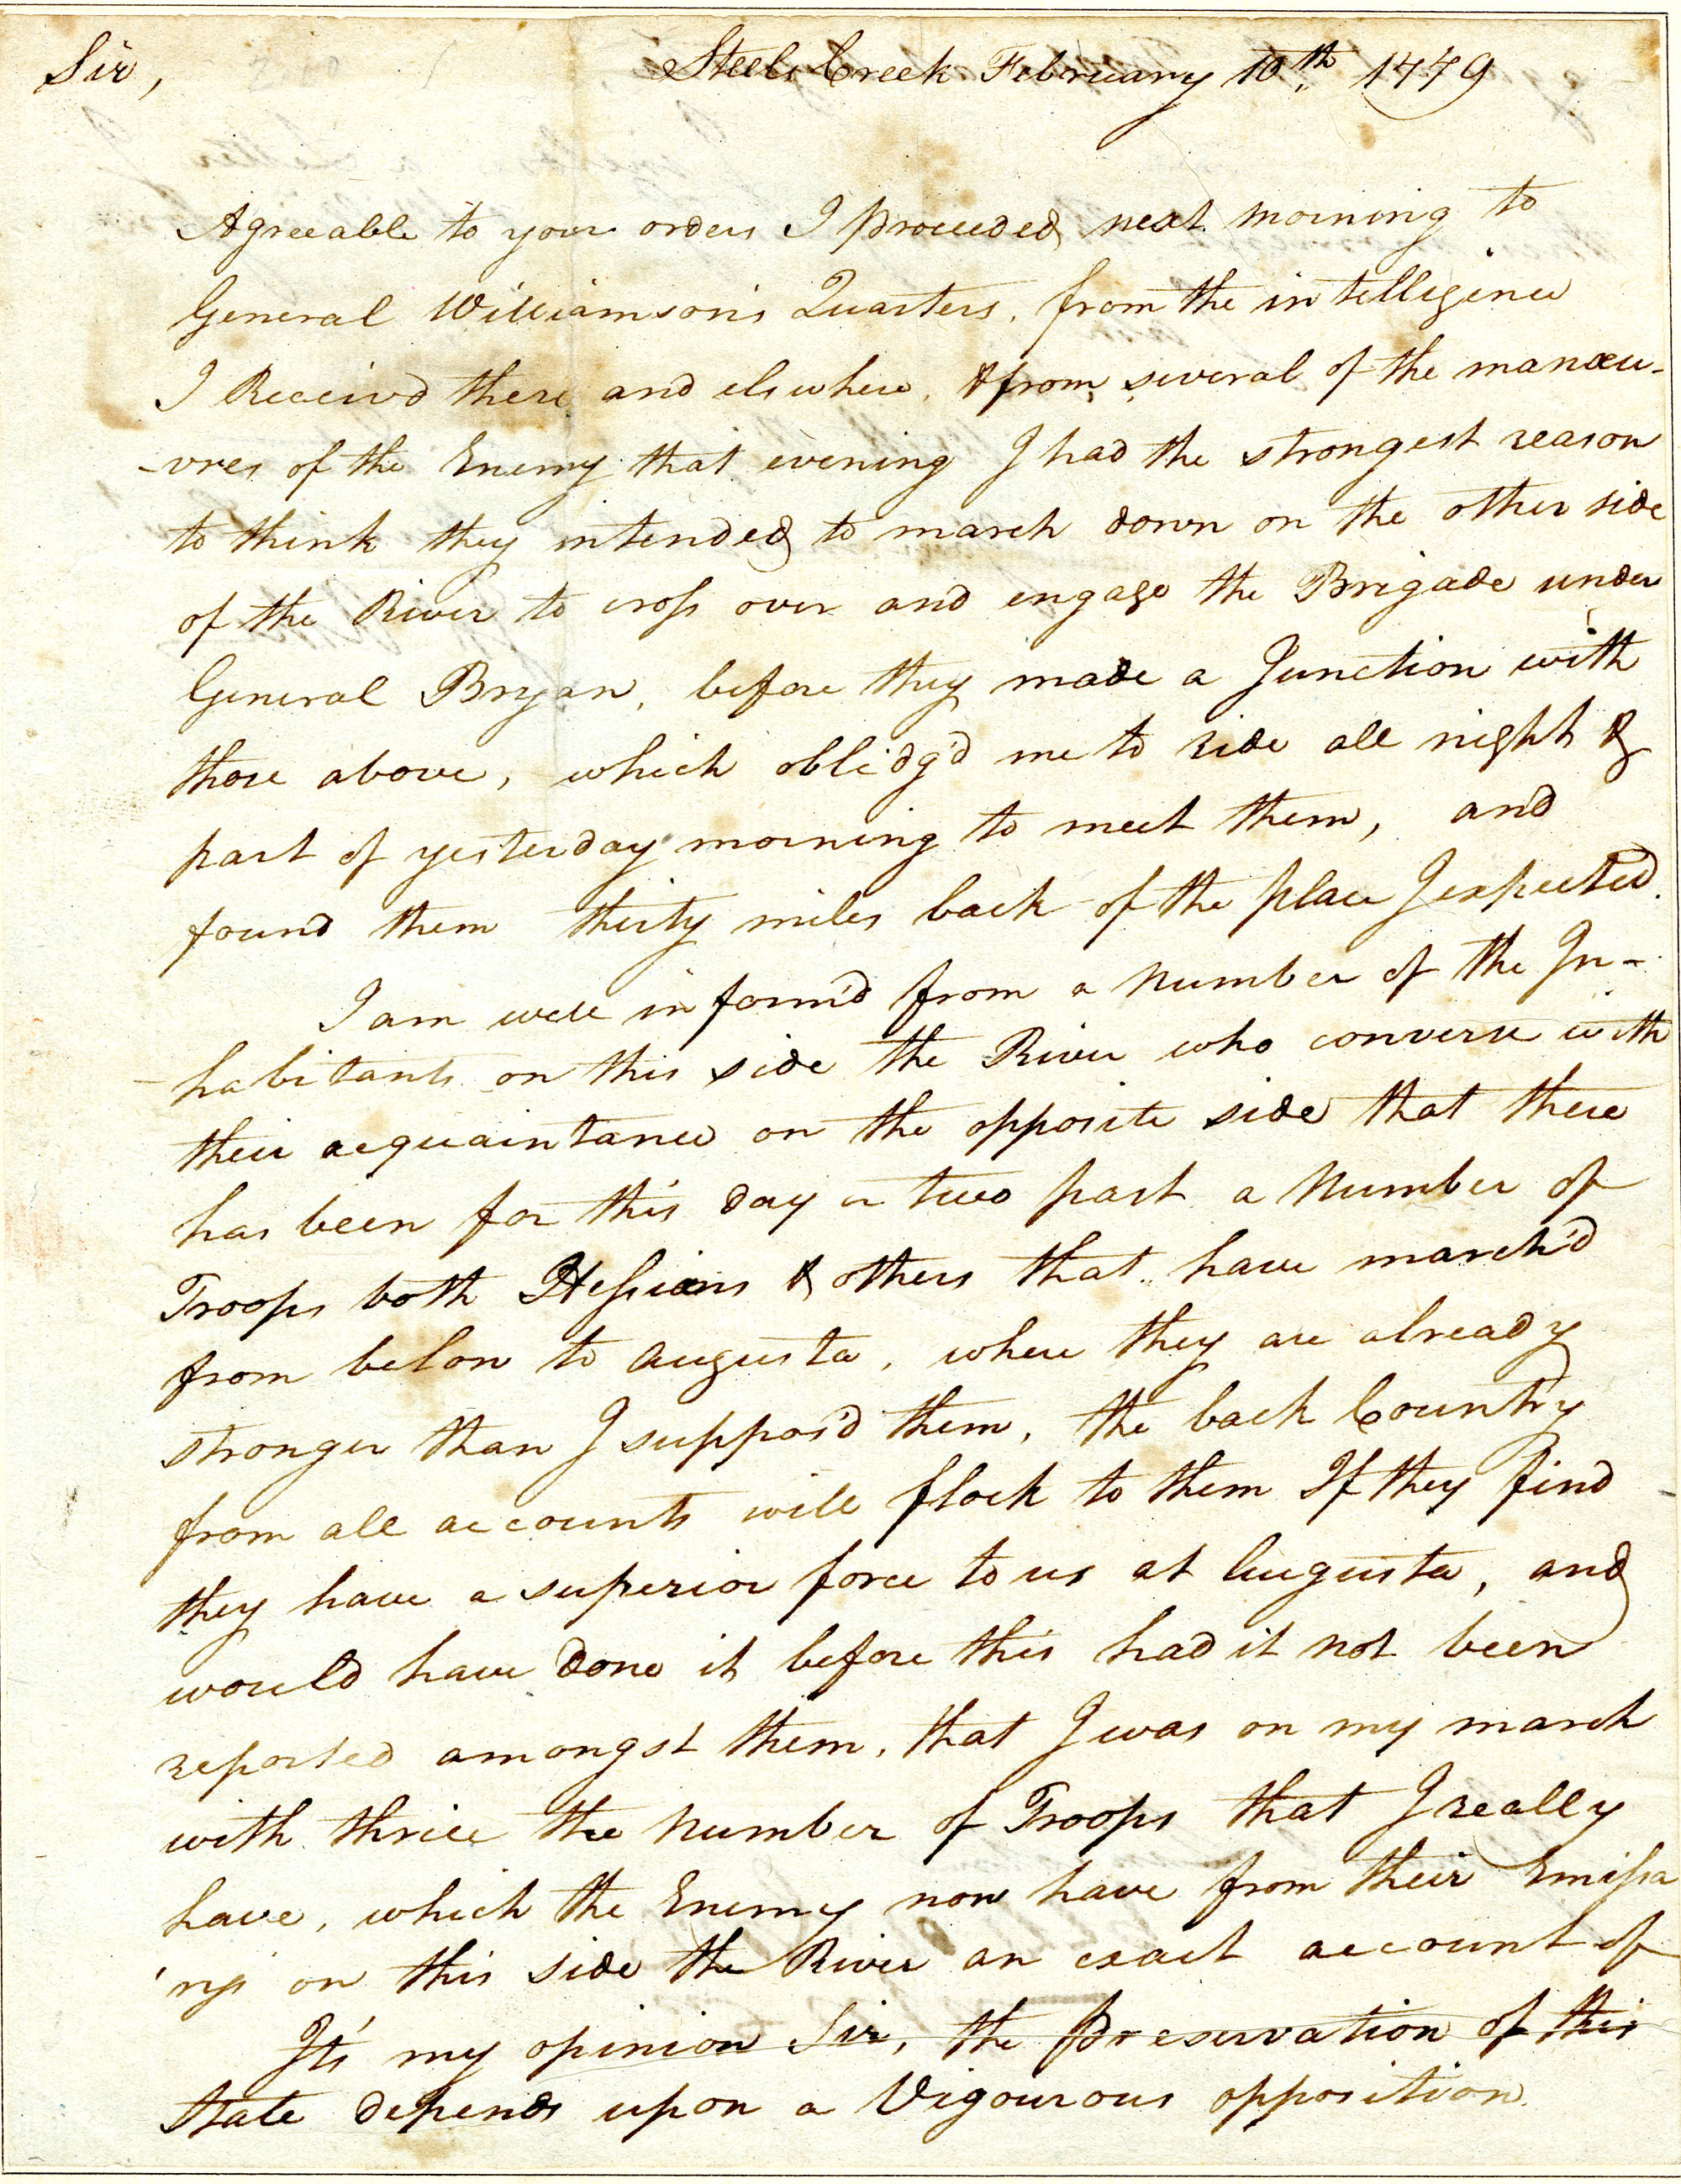 Letter from John Ashe to Benjamin Lincoln